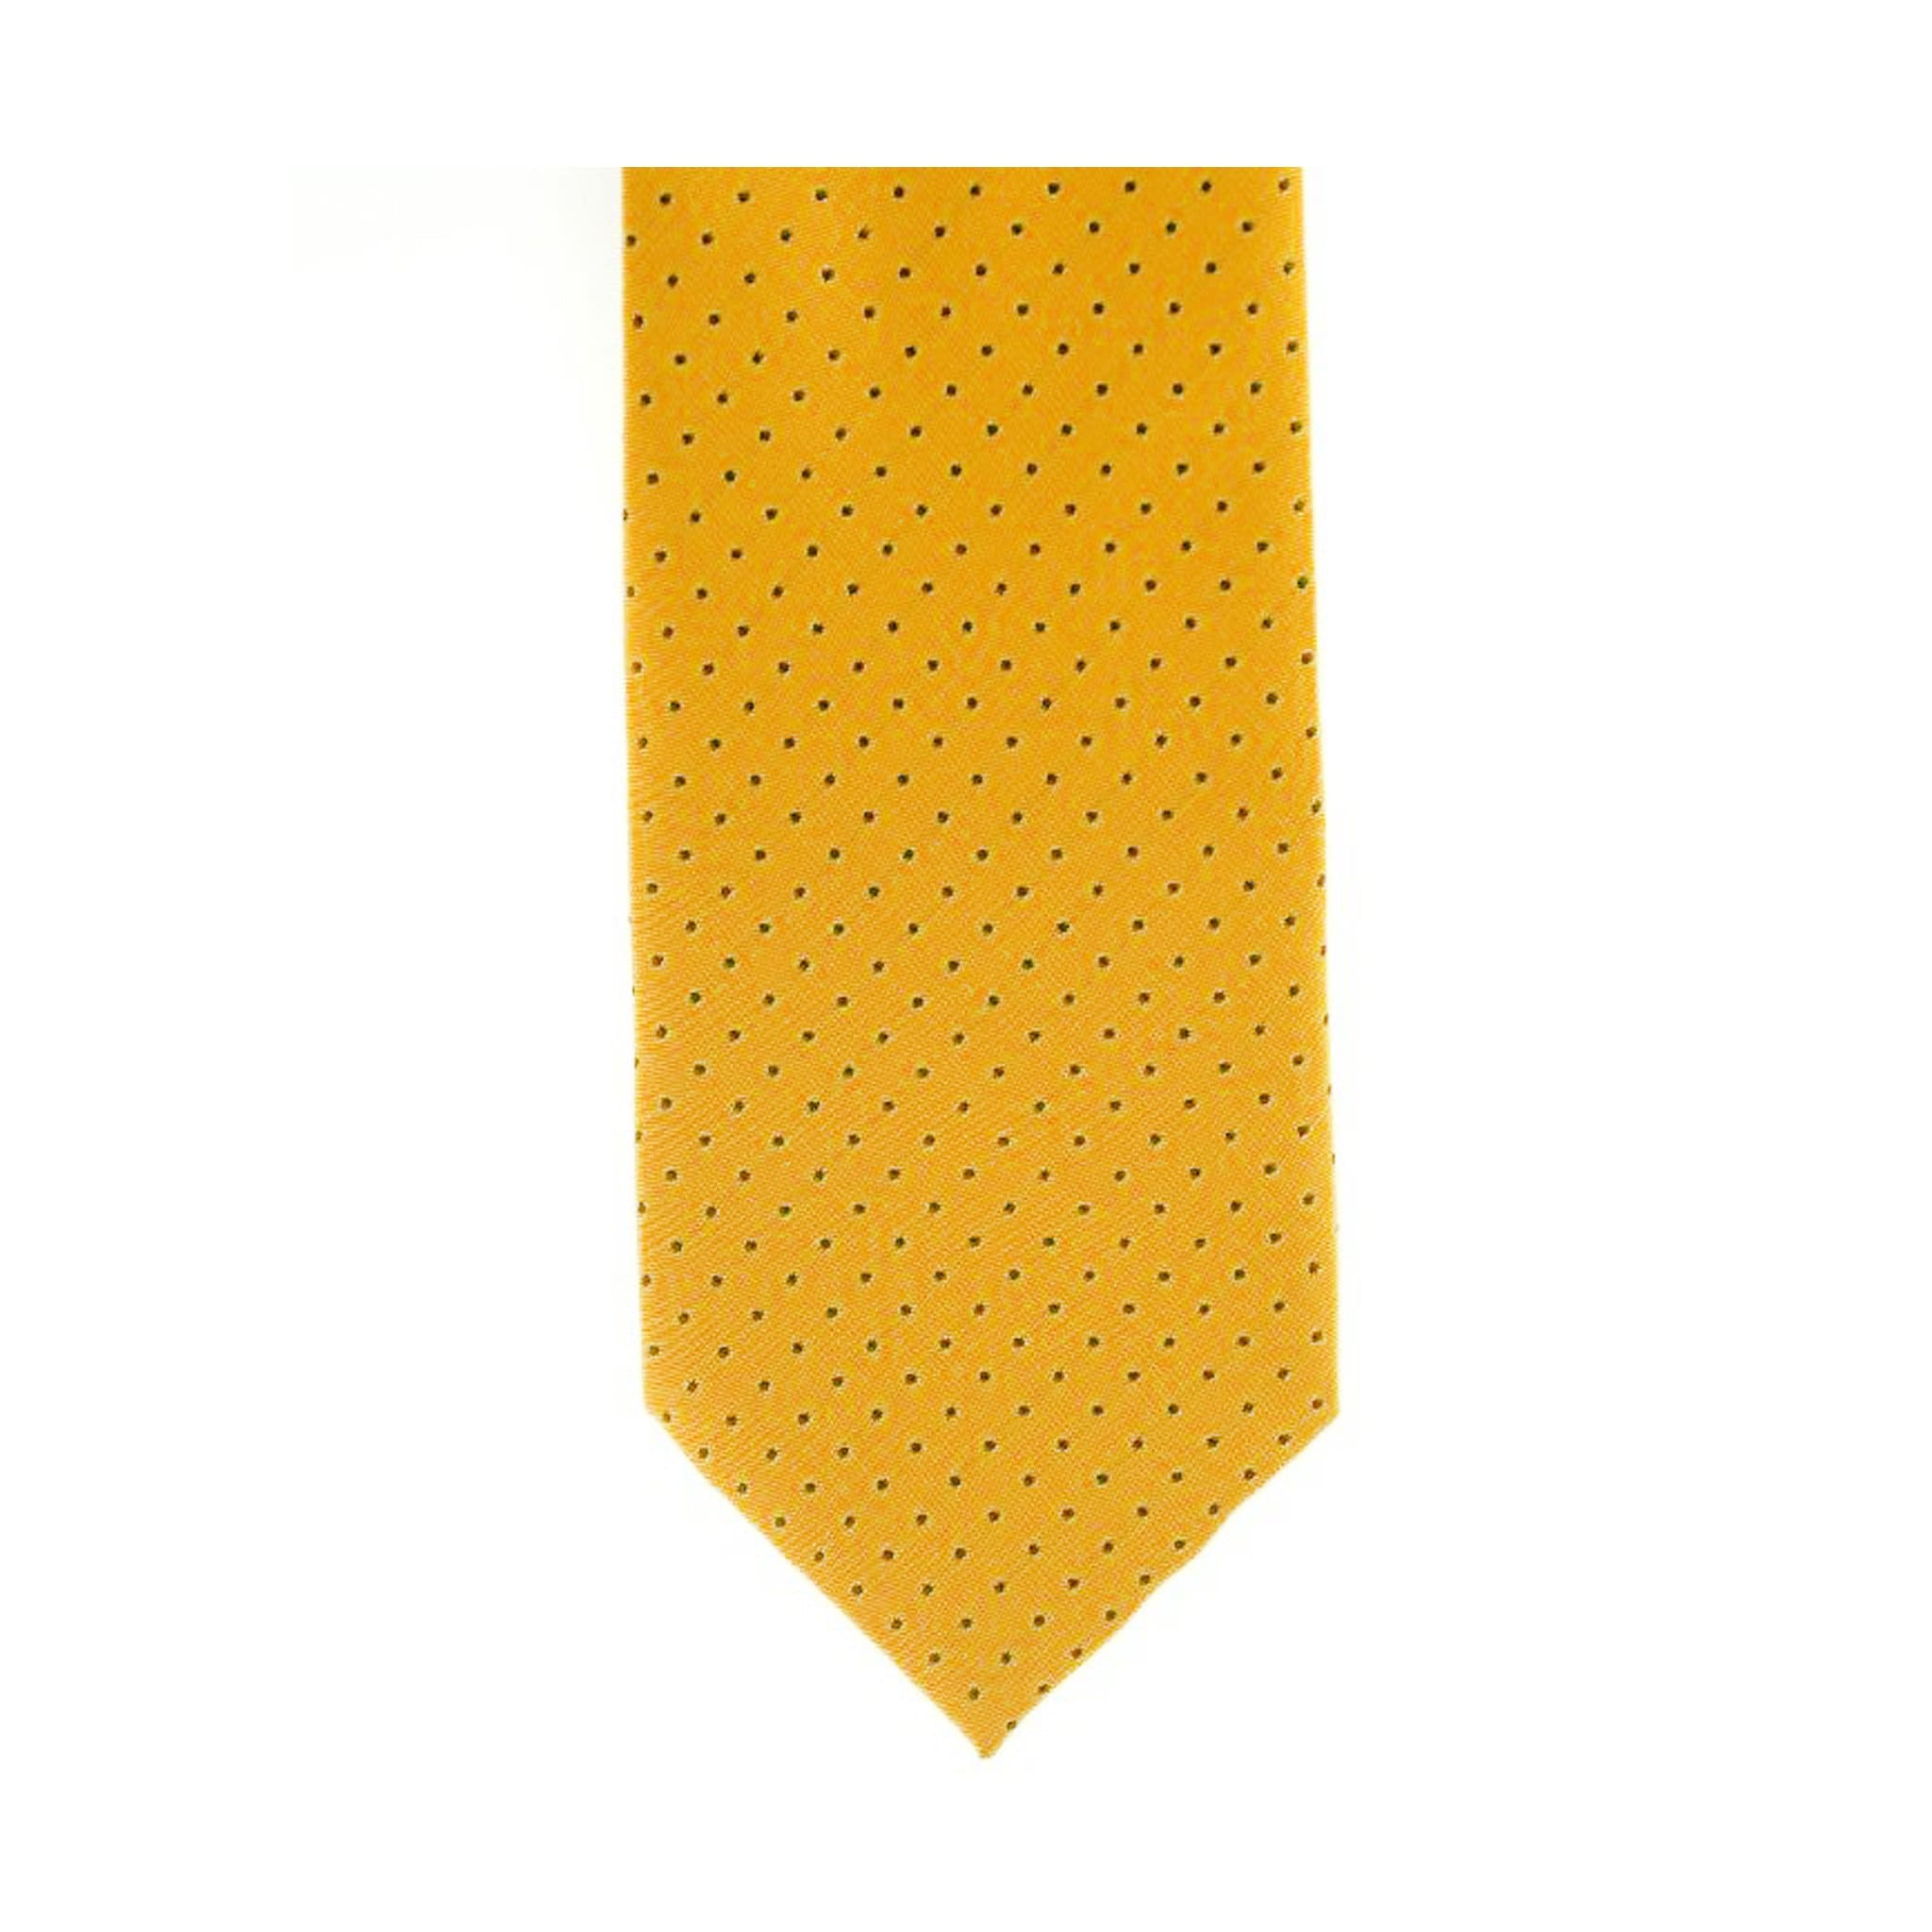 ShowQuest Pin Spot Tie Yellow and Navy Pin Spots 19271